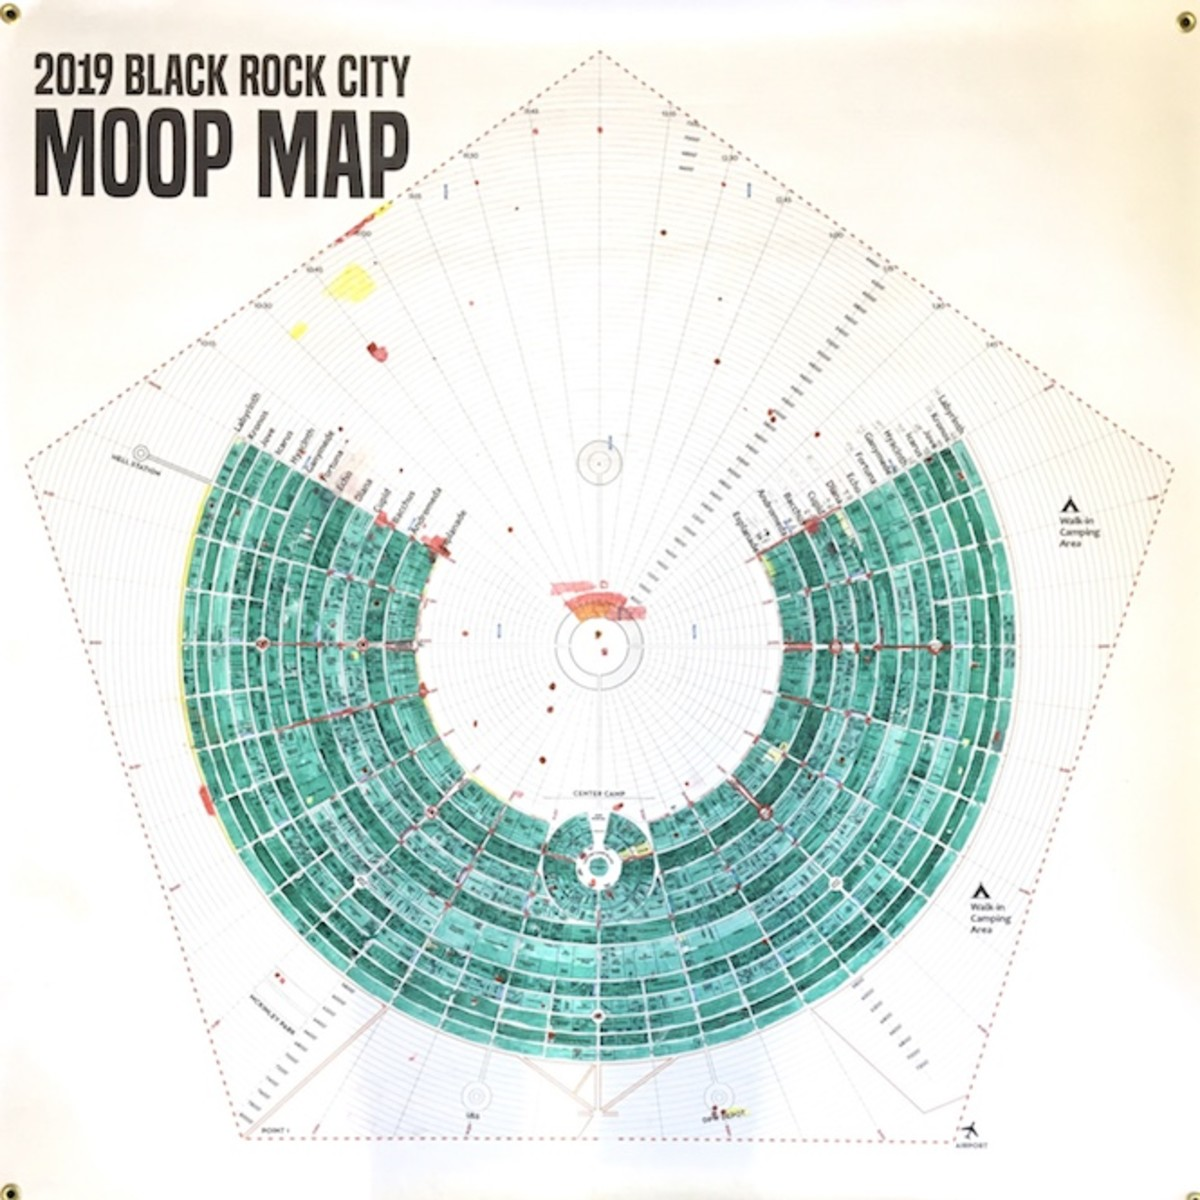 The preliminary Burning Man 2019 MOOP Map